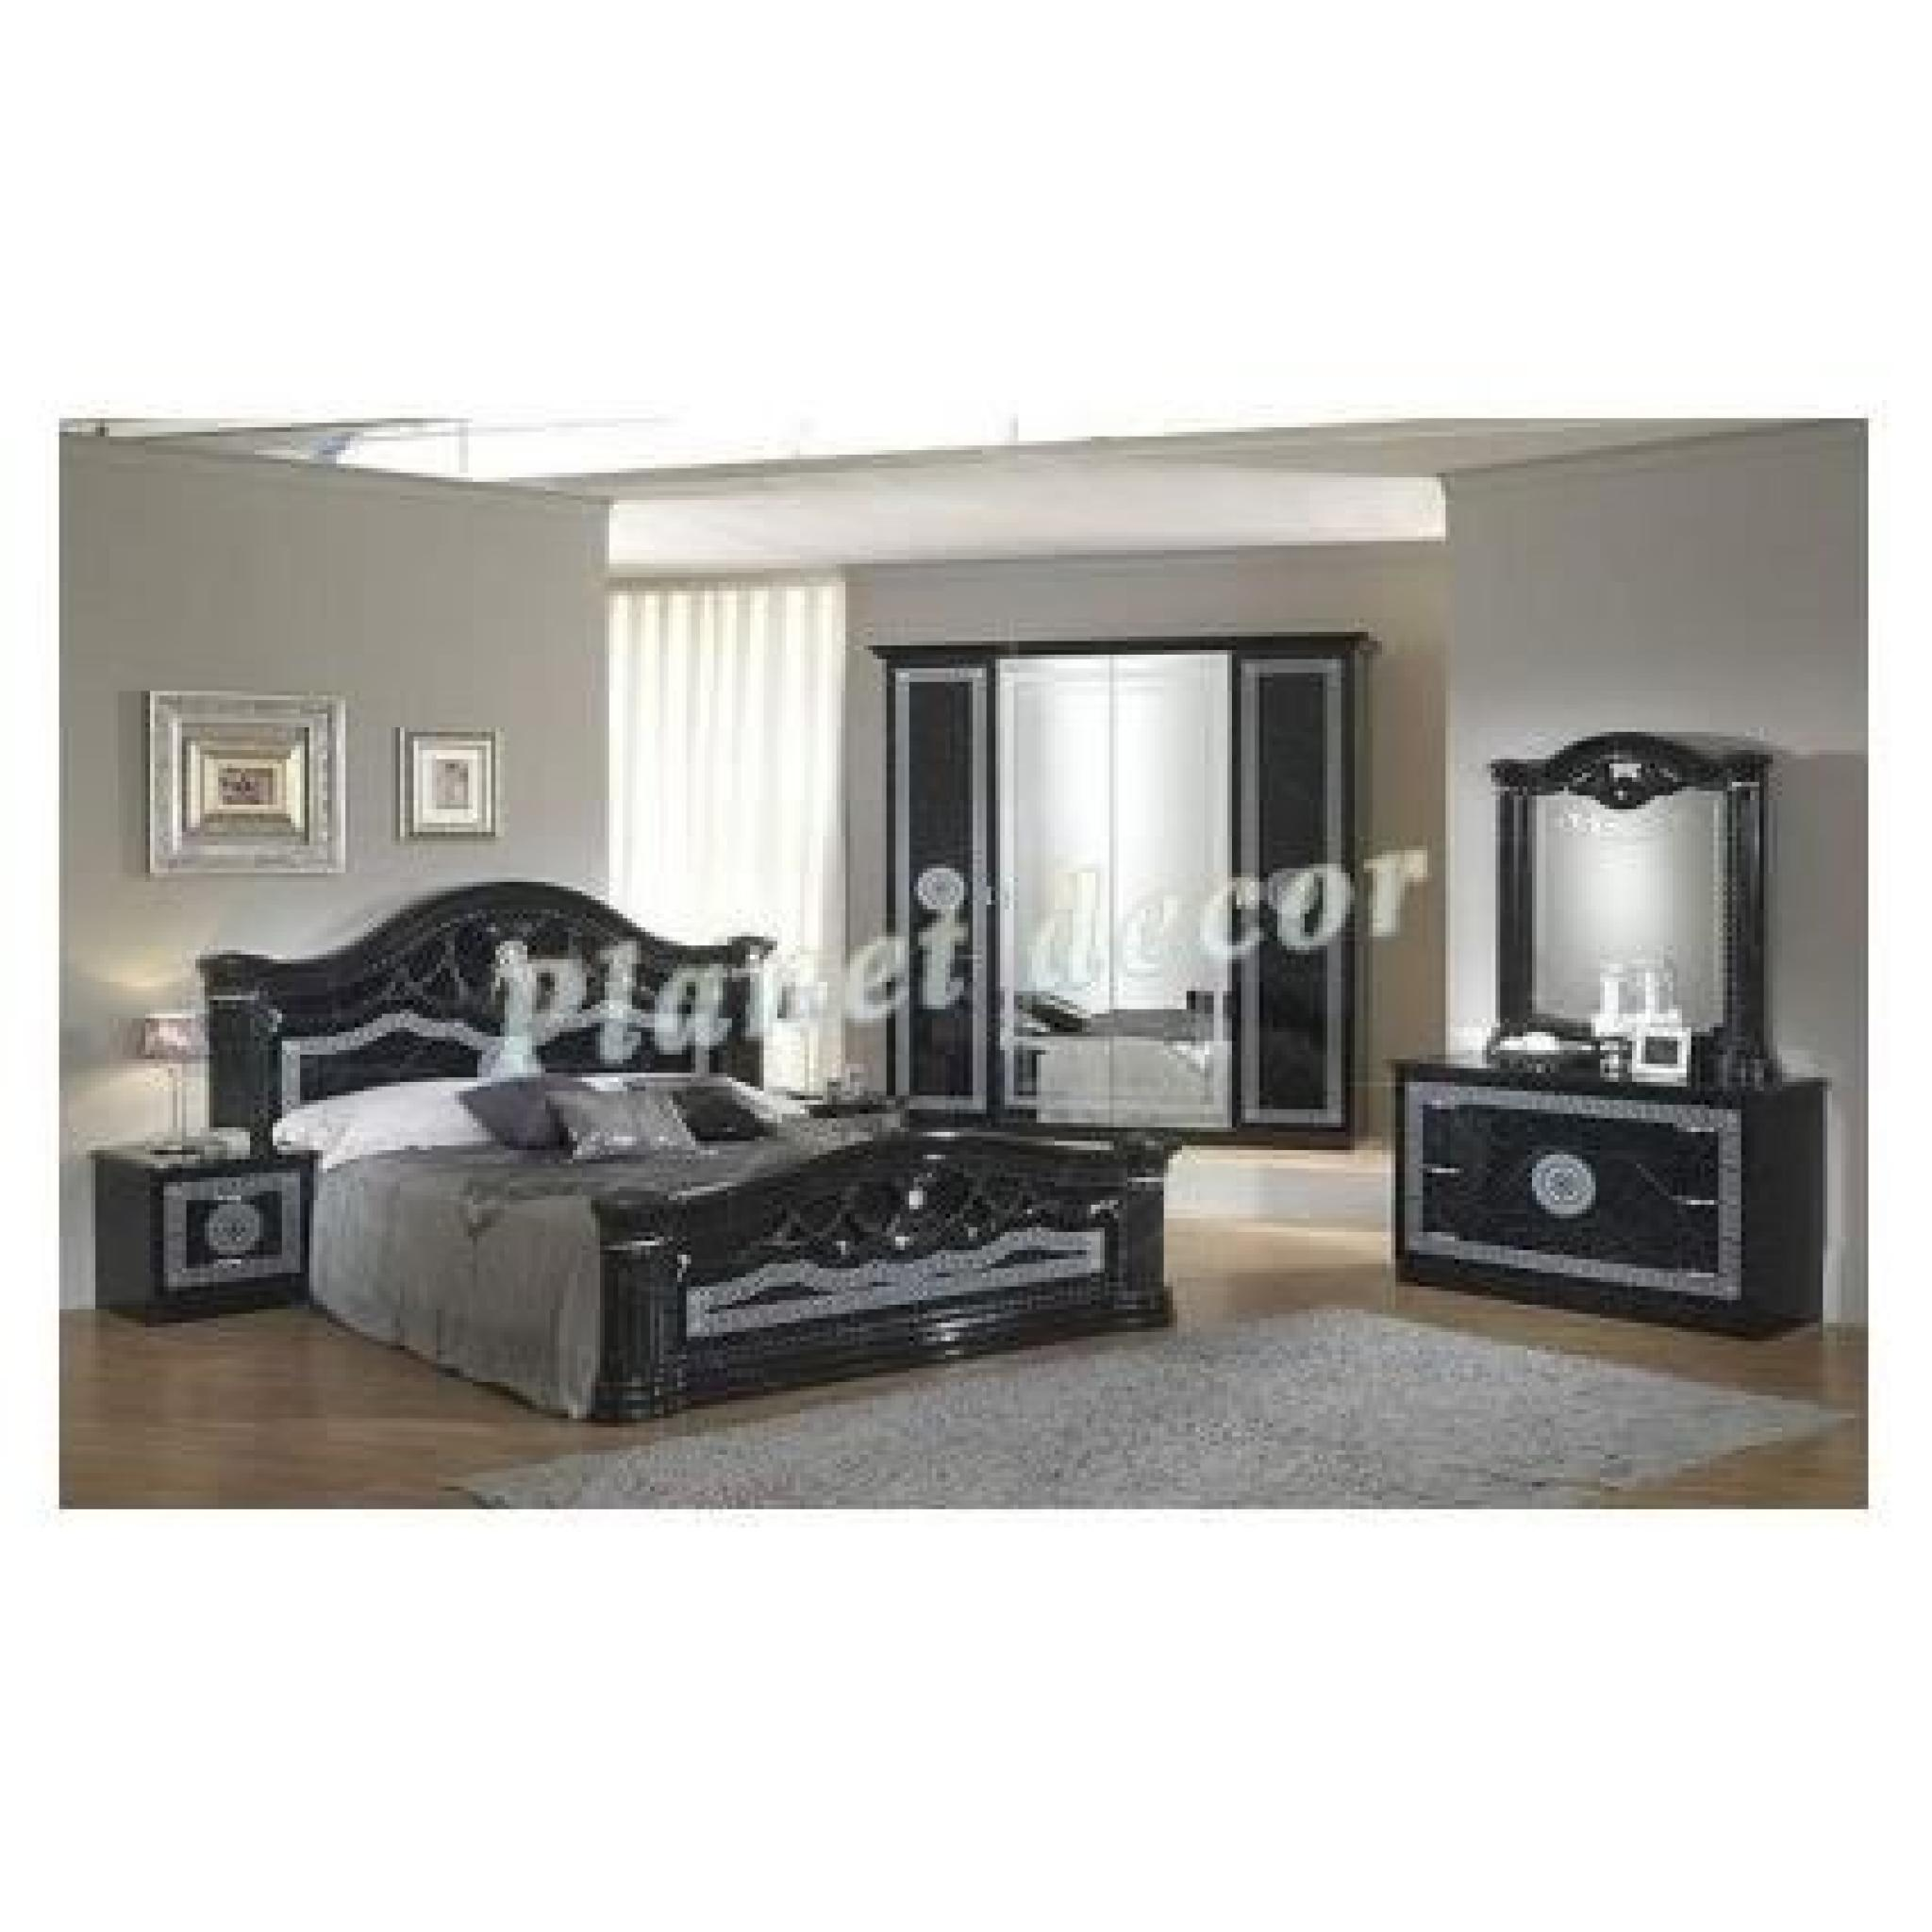 modele de chambre a coucher 2015. Black Bedroom Furniture Sets. Home Design Ideas